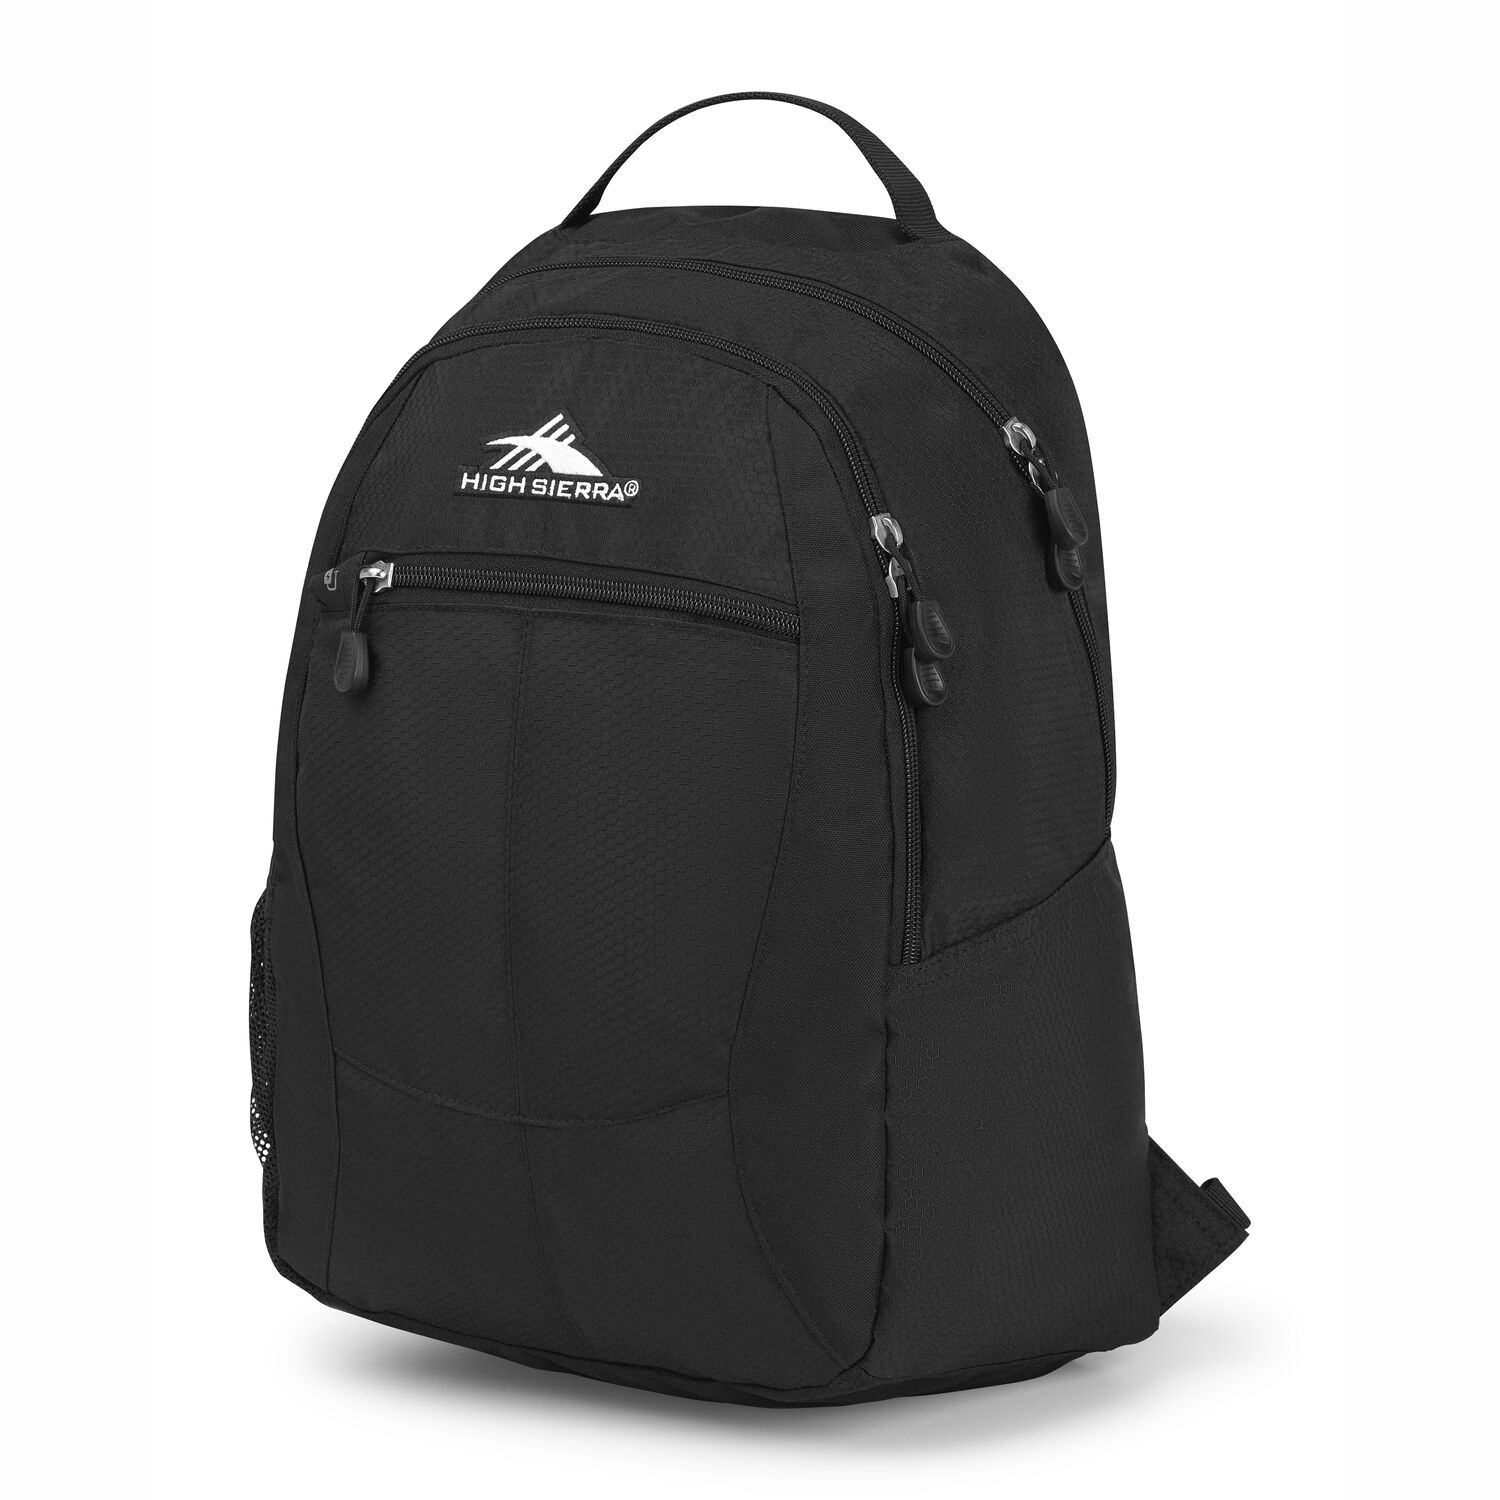 377a0169e8 High Sierra Curve Backpack in the color Black.